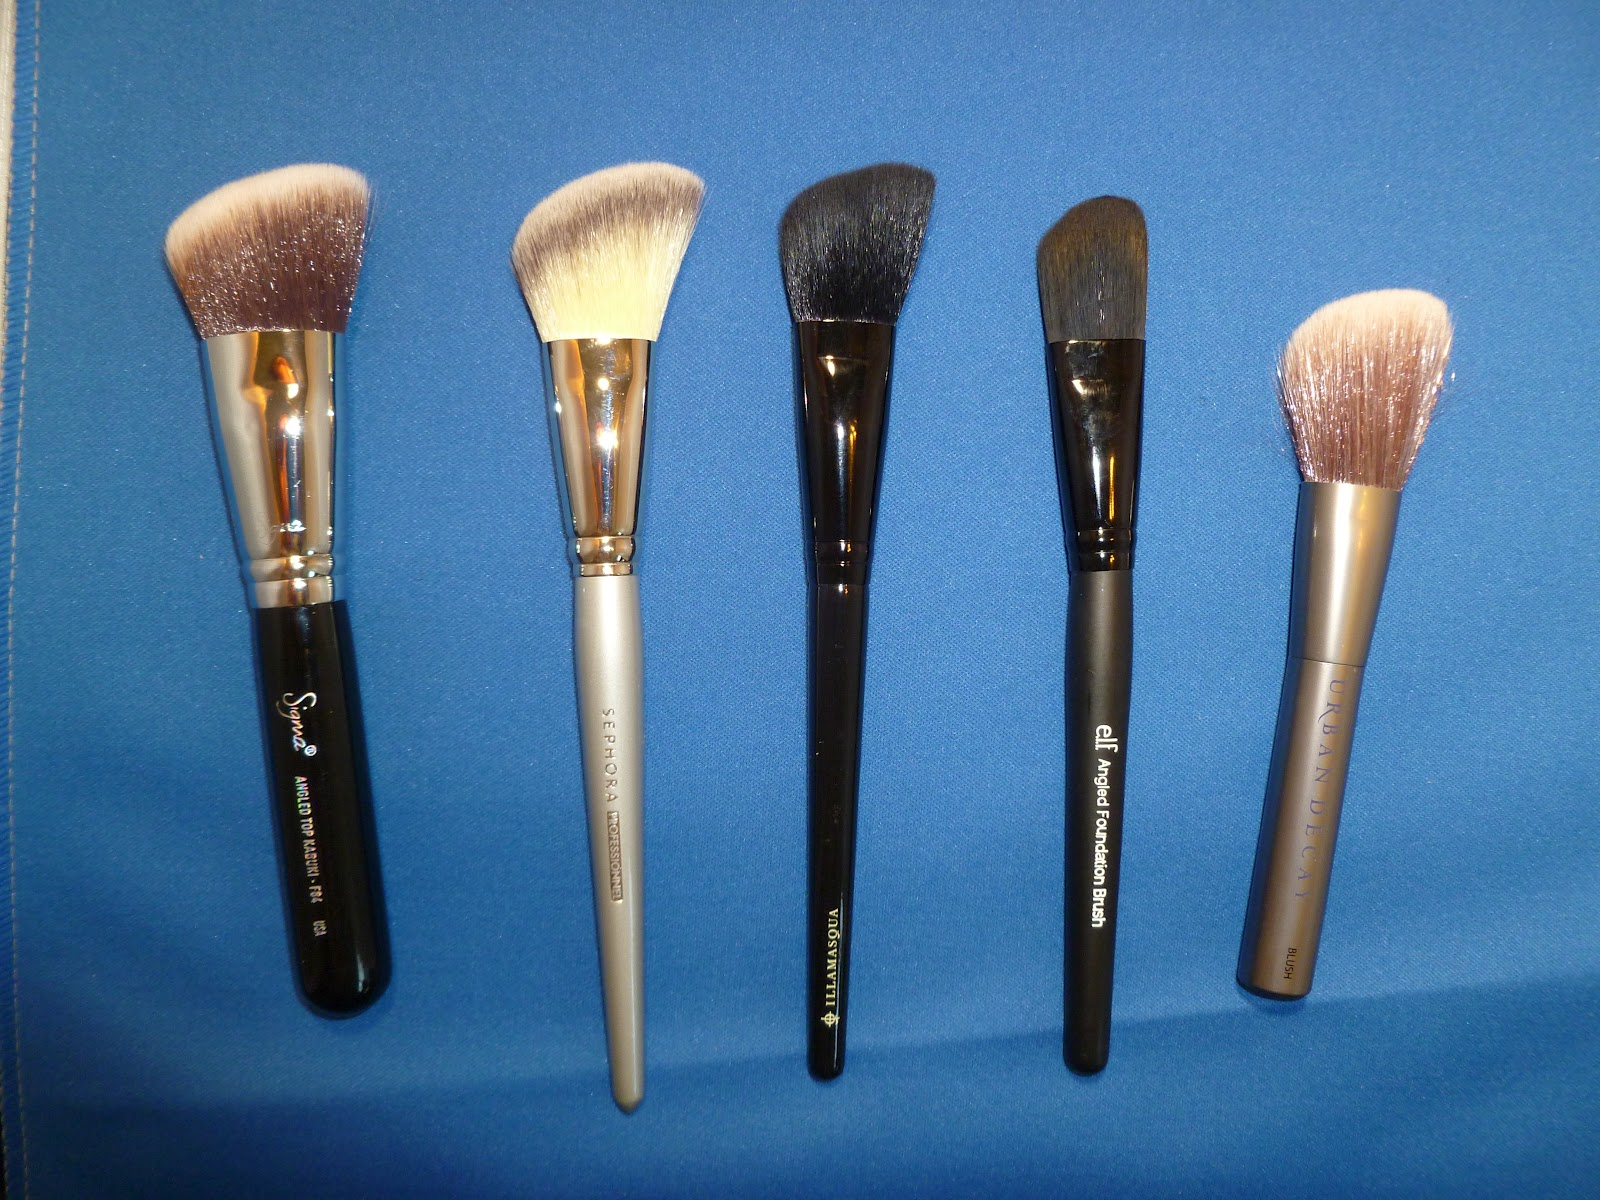 Pro Angled Blush Brush #49 by Sephora Collection #5